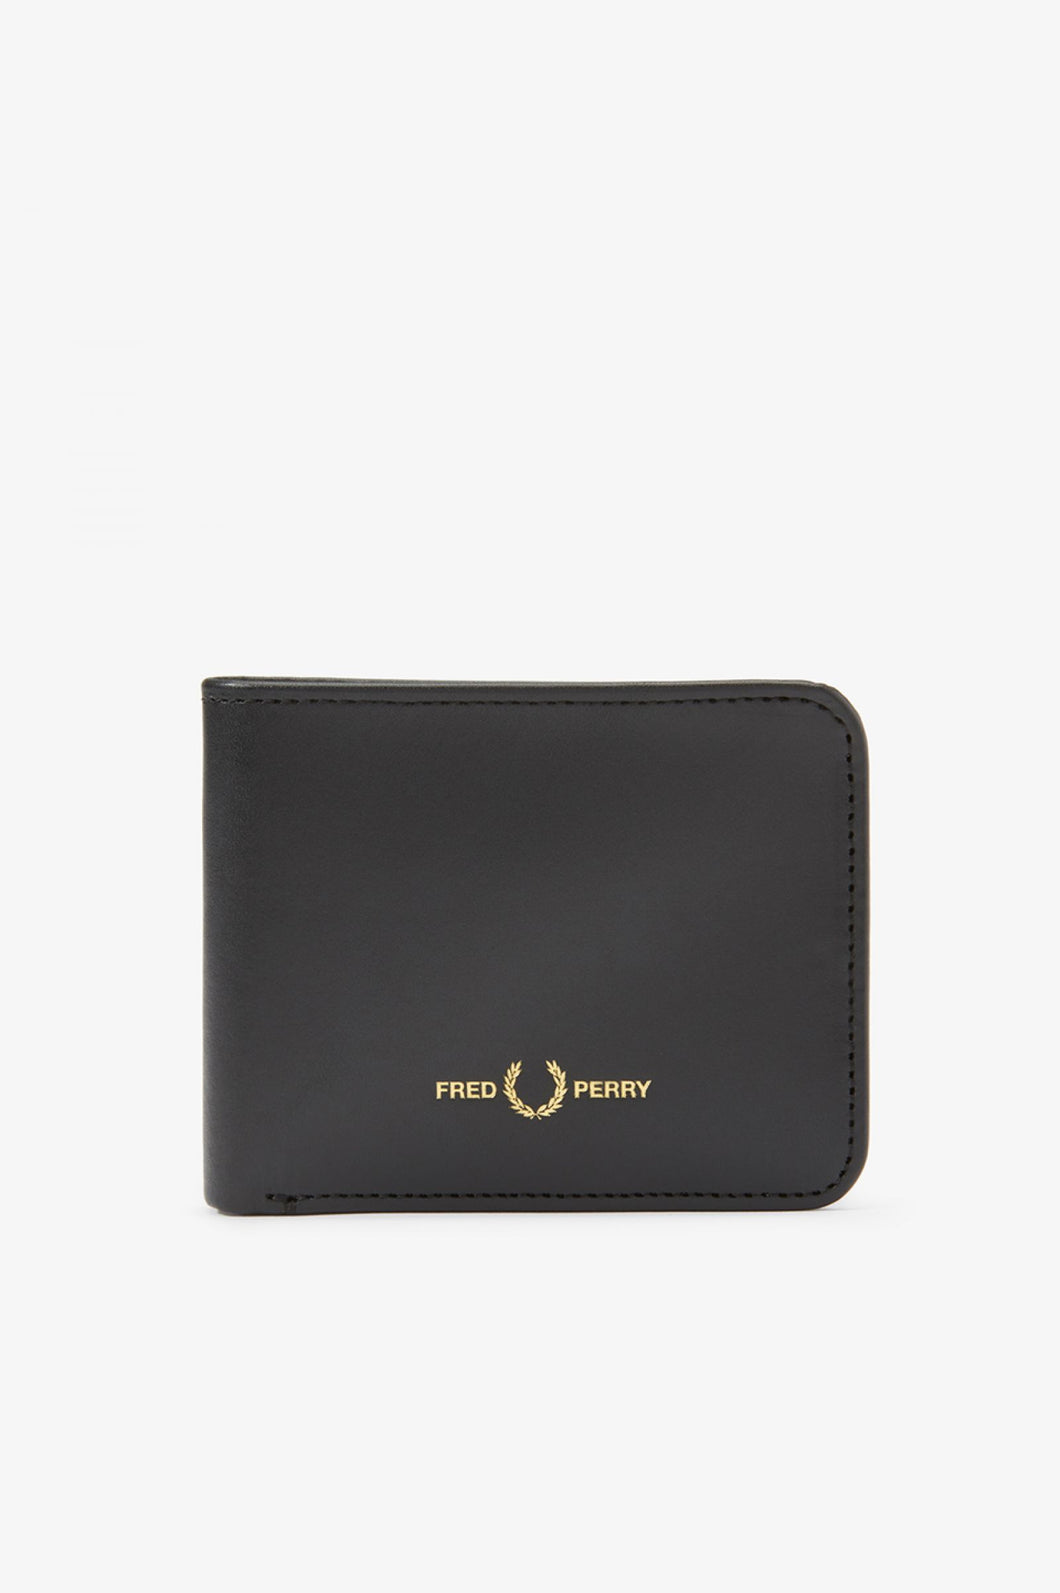 Fred Perry Black Graphic Leather Billfold Wallet L8278 - 102